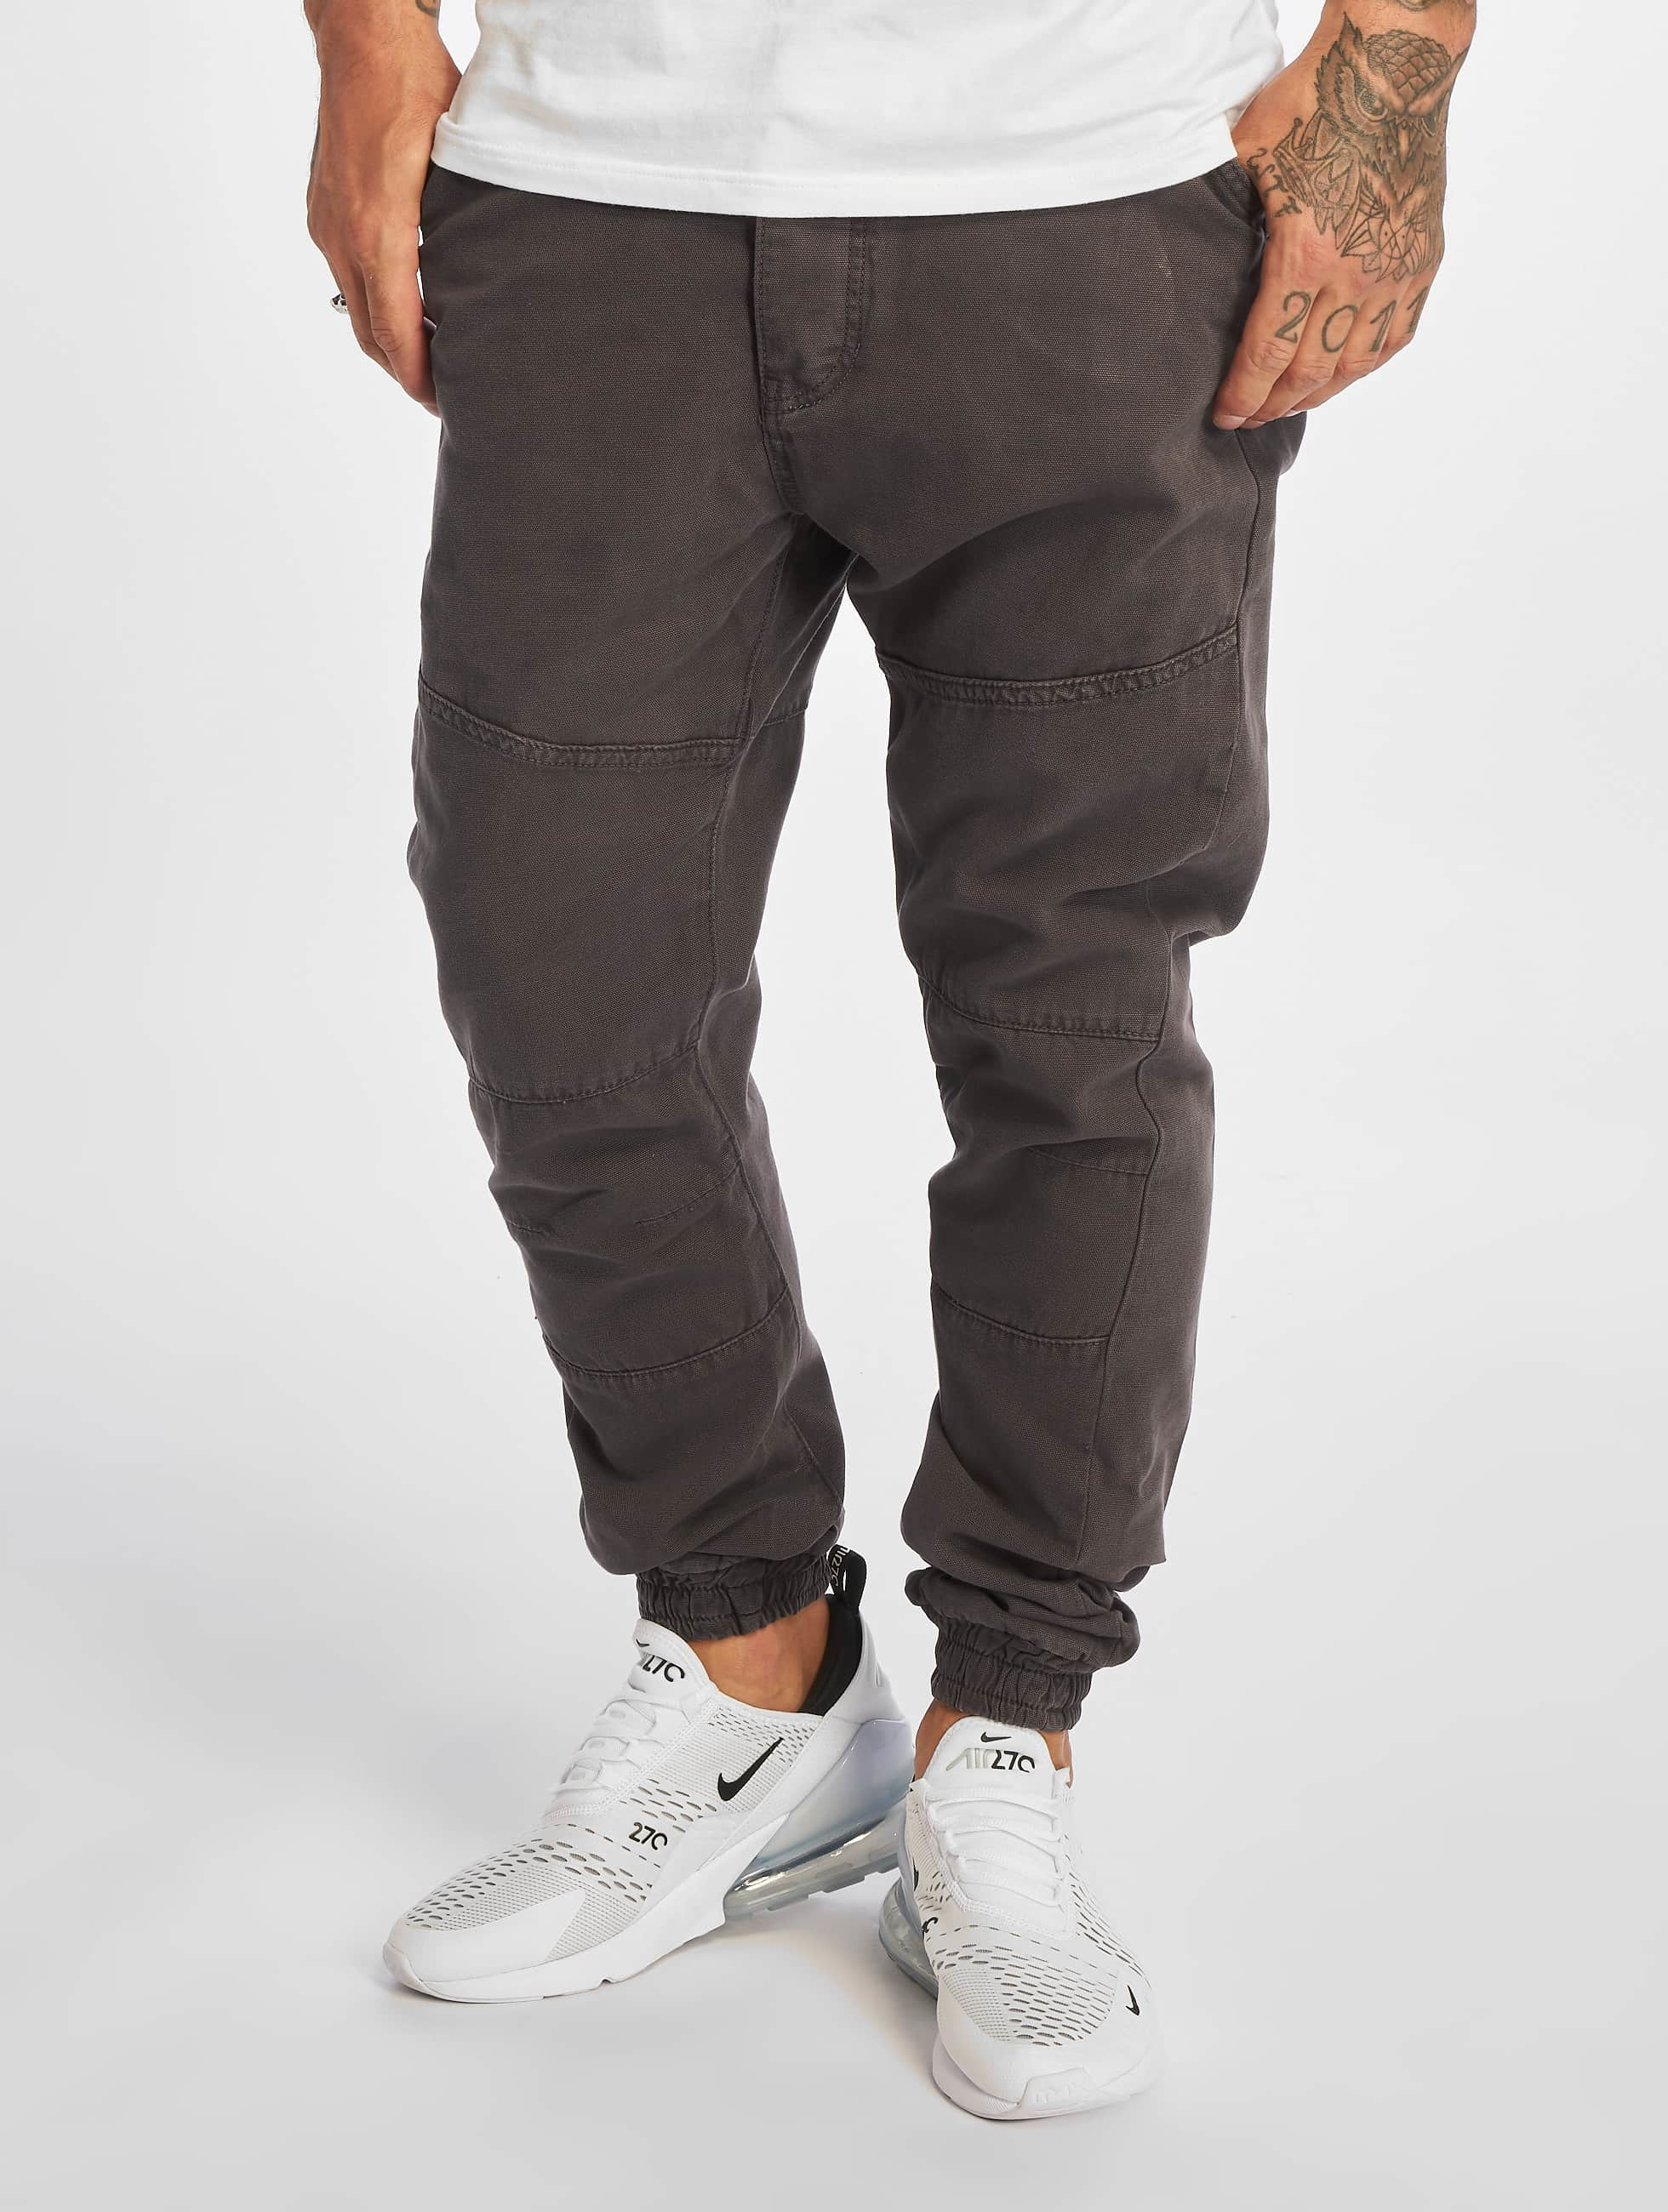 Just Rhyse / Chino Börge in grey W 33